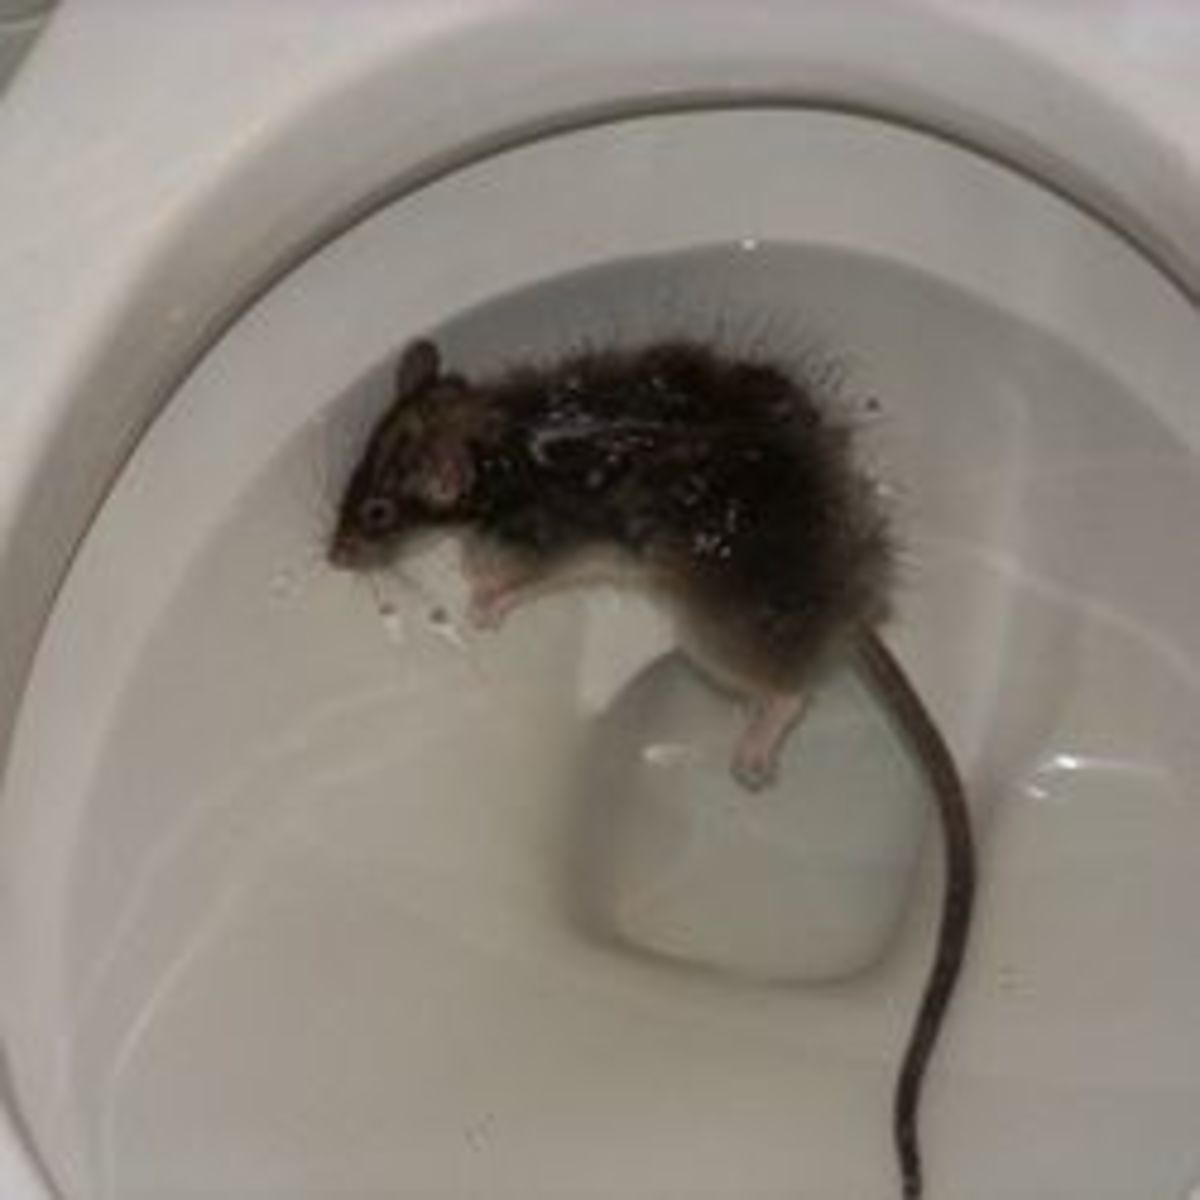 Eek! There's a Rat in My Toilet!